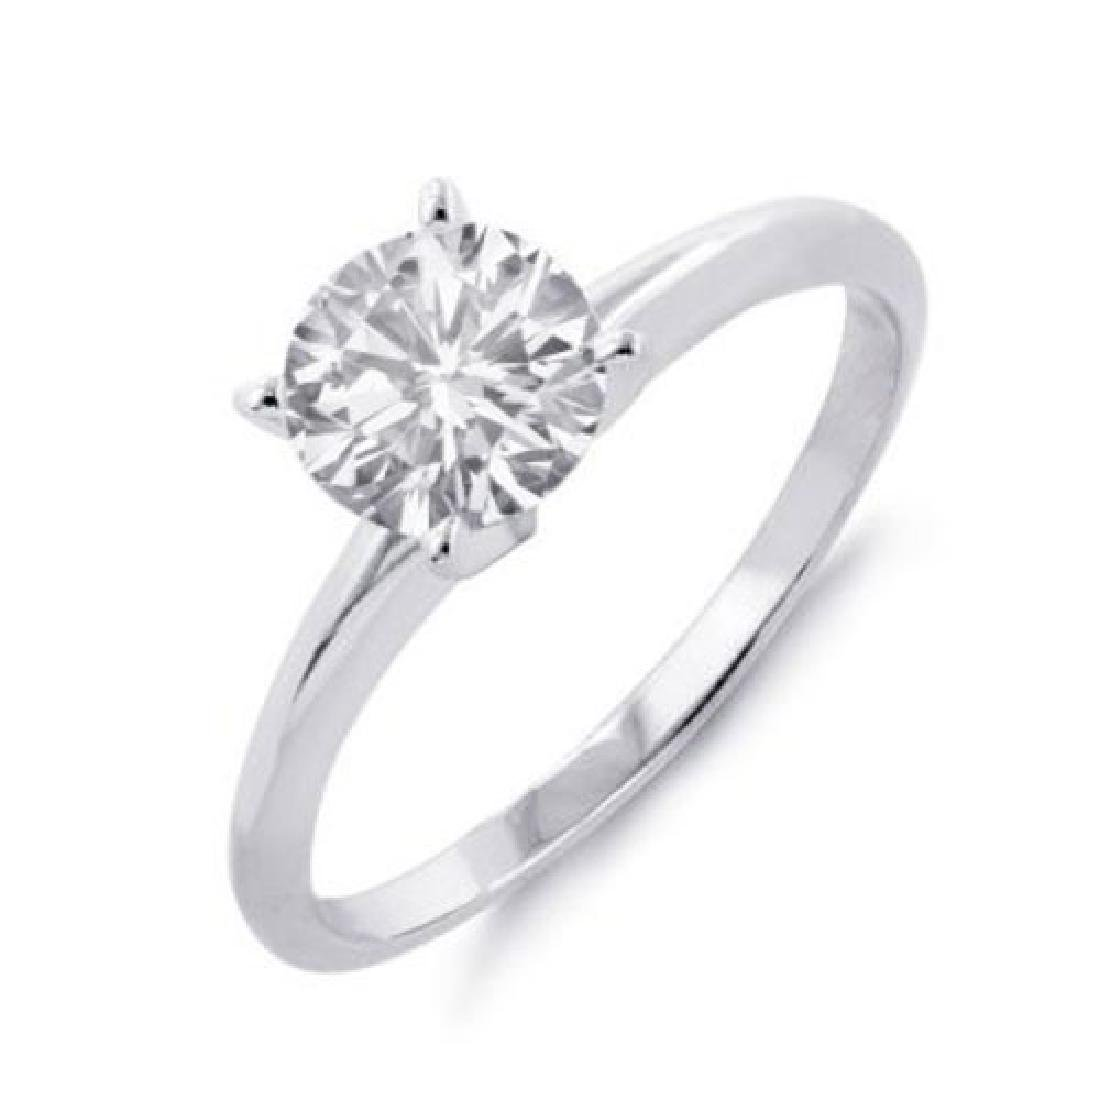 1.50 CTW Certified VS/SI Diamond Solitaire Ring 18K